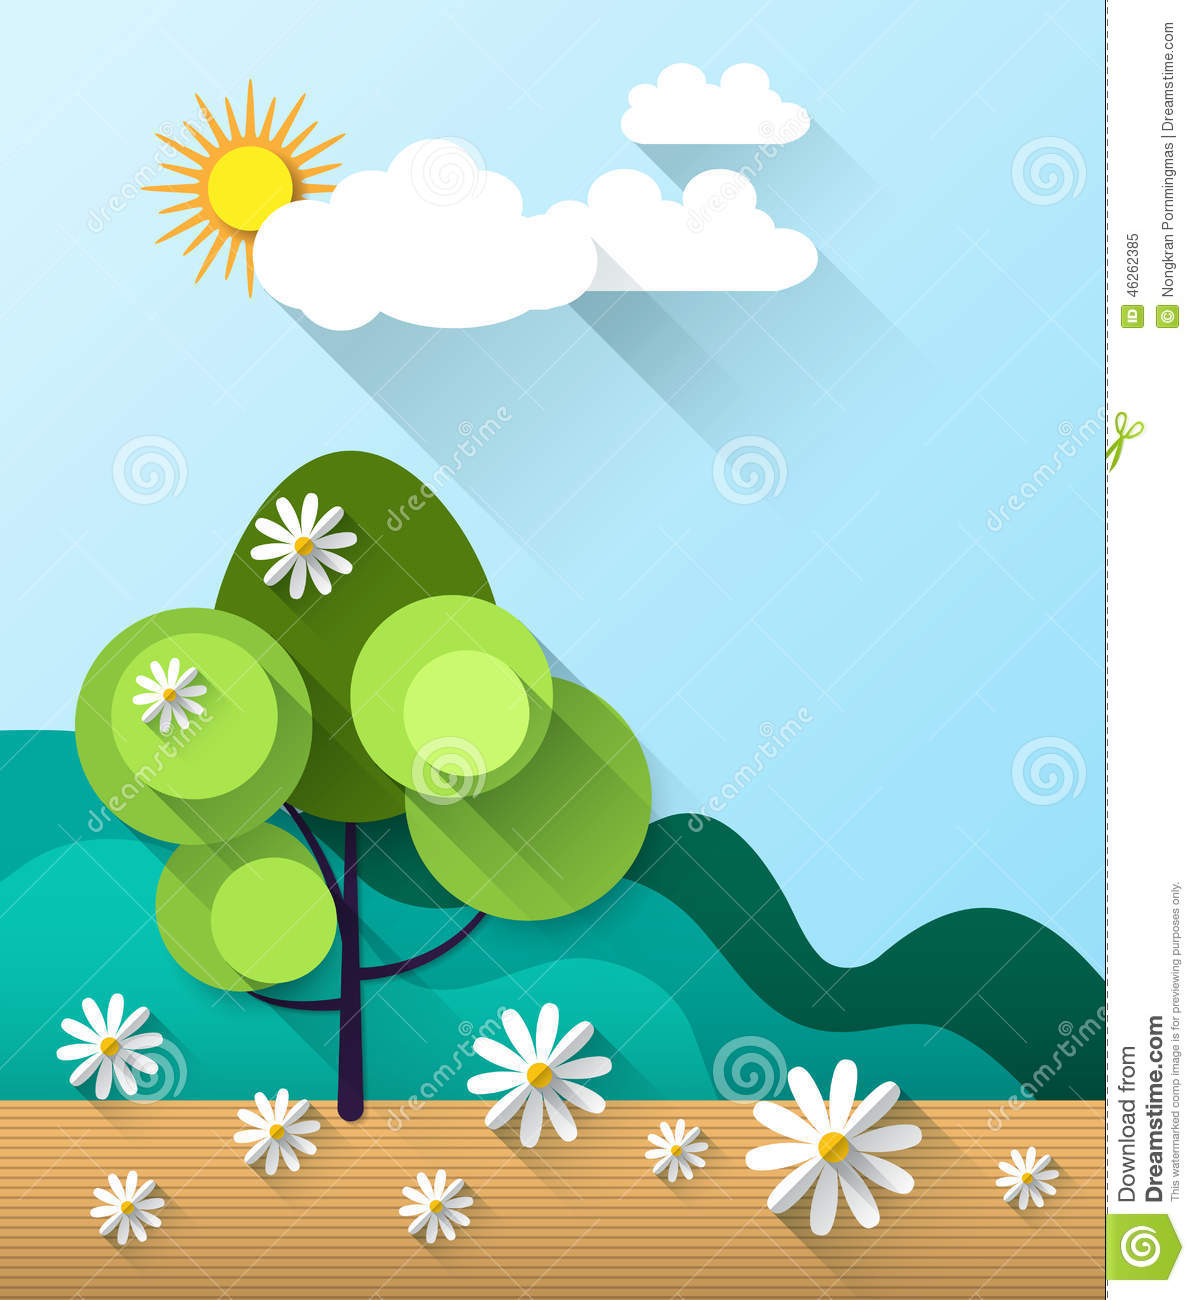 Abstract Spring Card Background With Paper Flowers Stock Vector